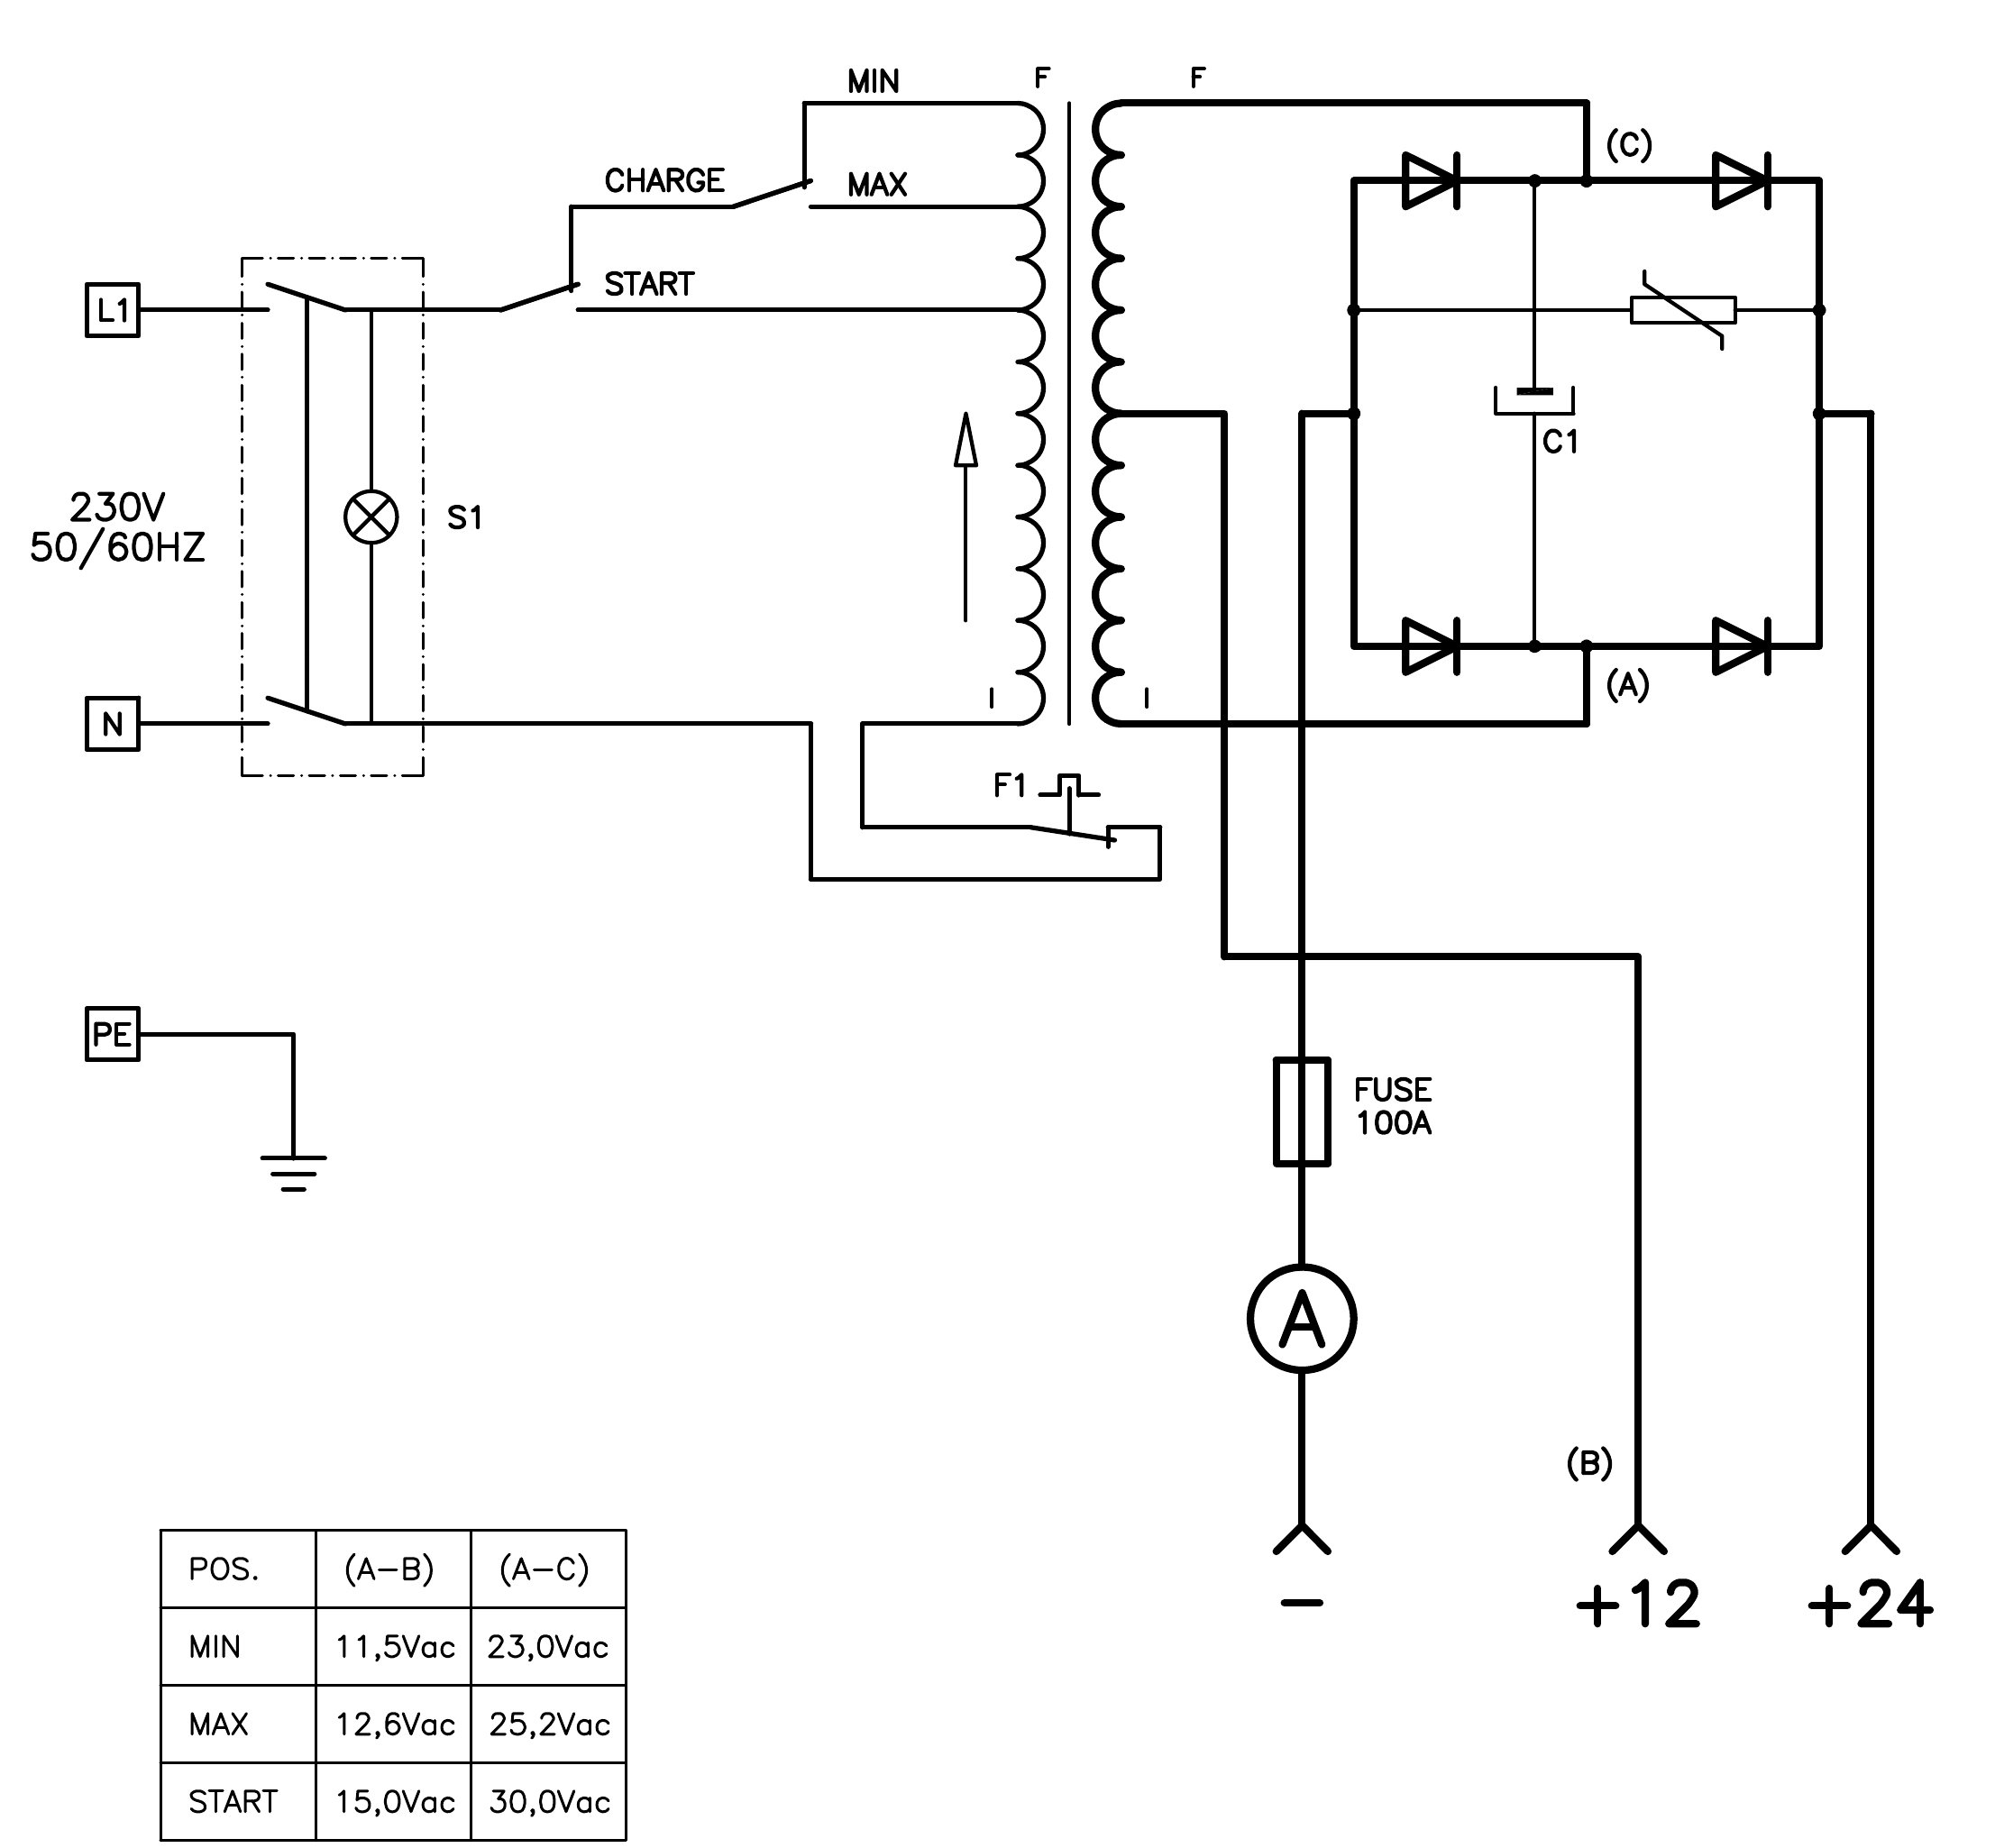 05533 wiring diagram sip mig welder wiring diagram efcaviation com mig wiring diagram at crackthecode.co